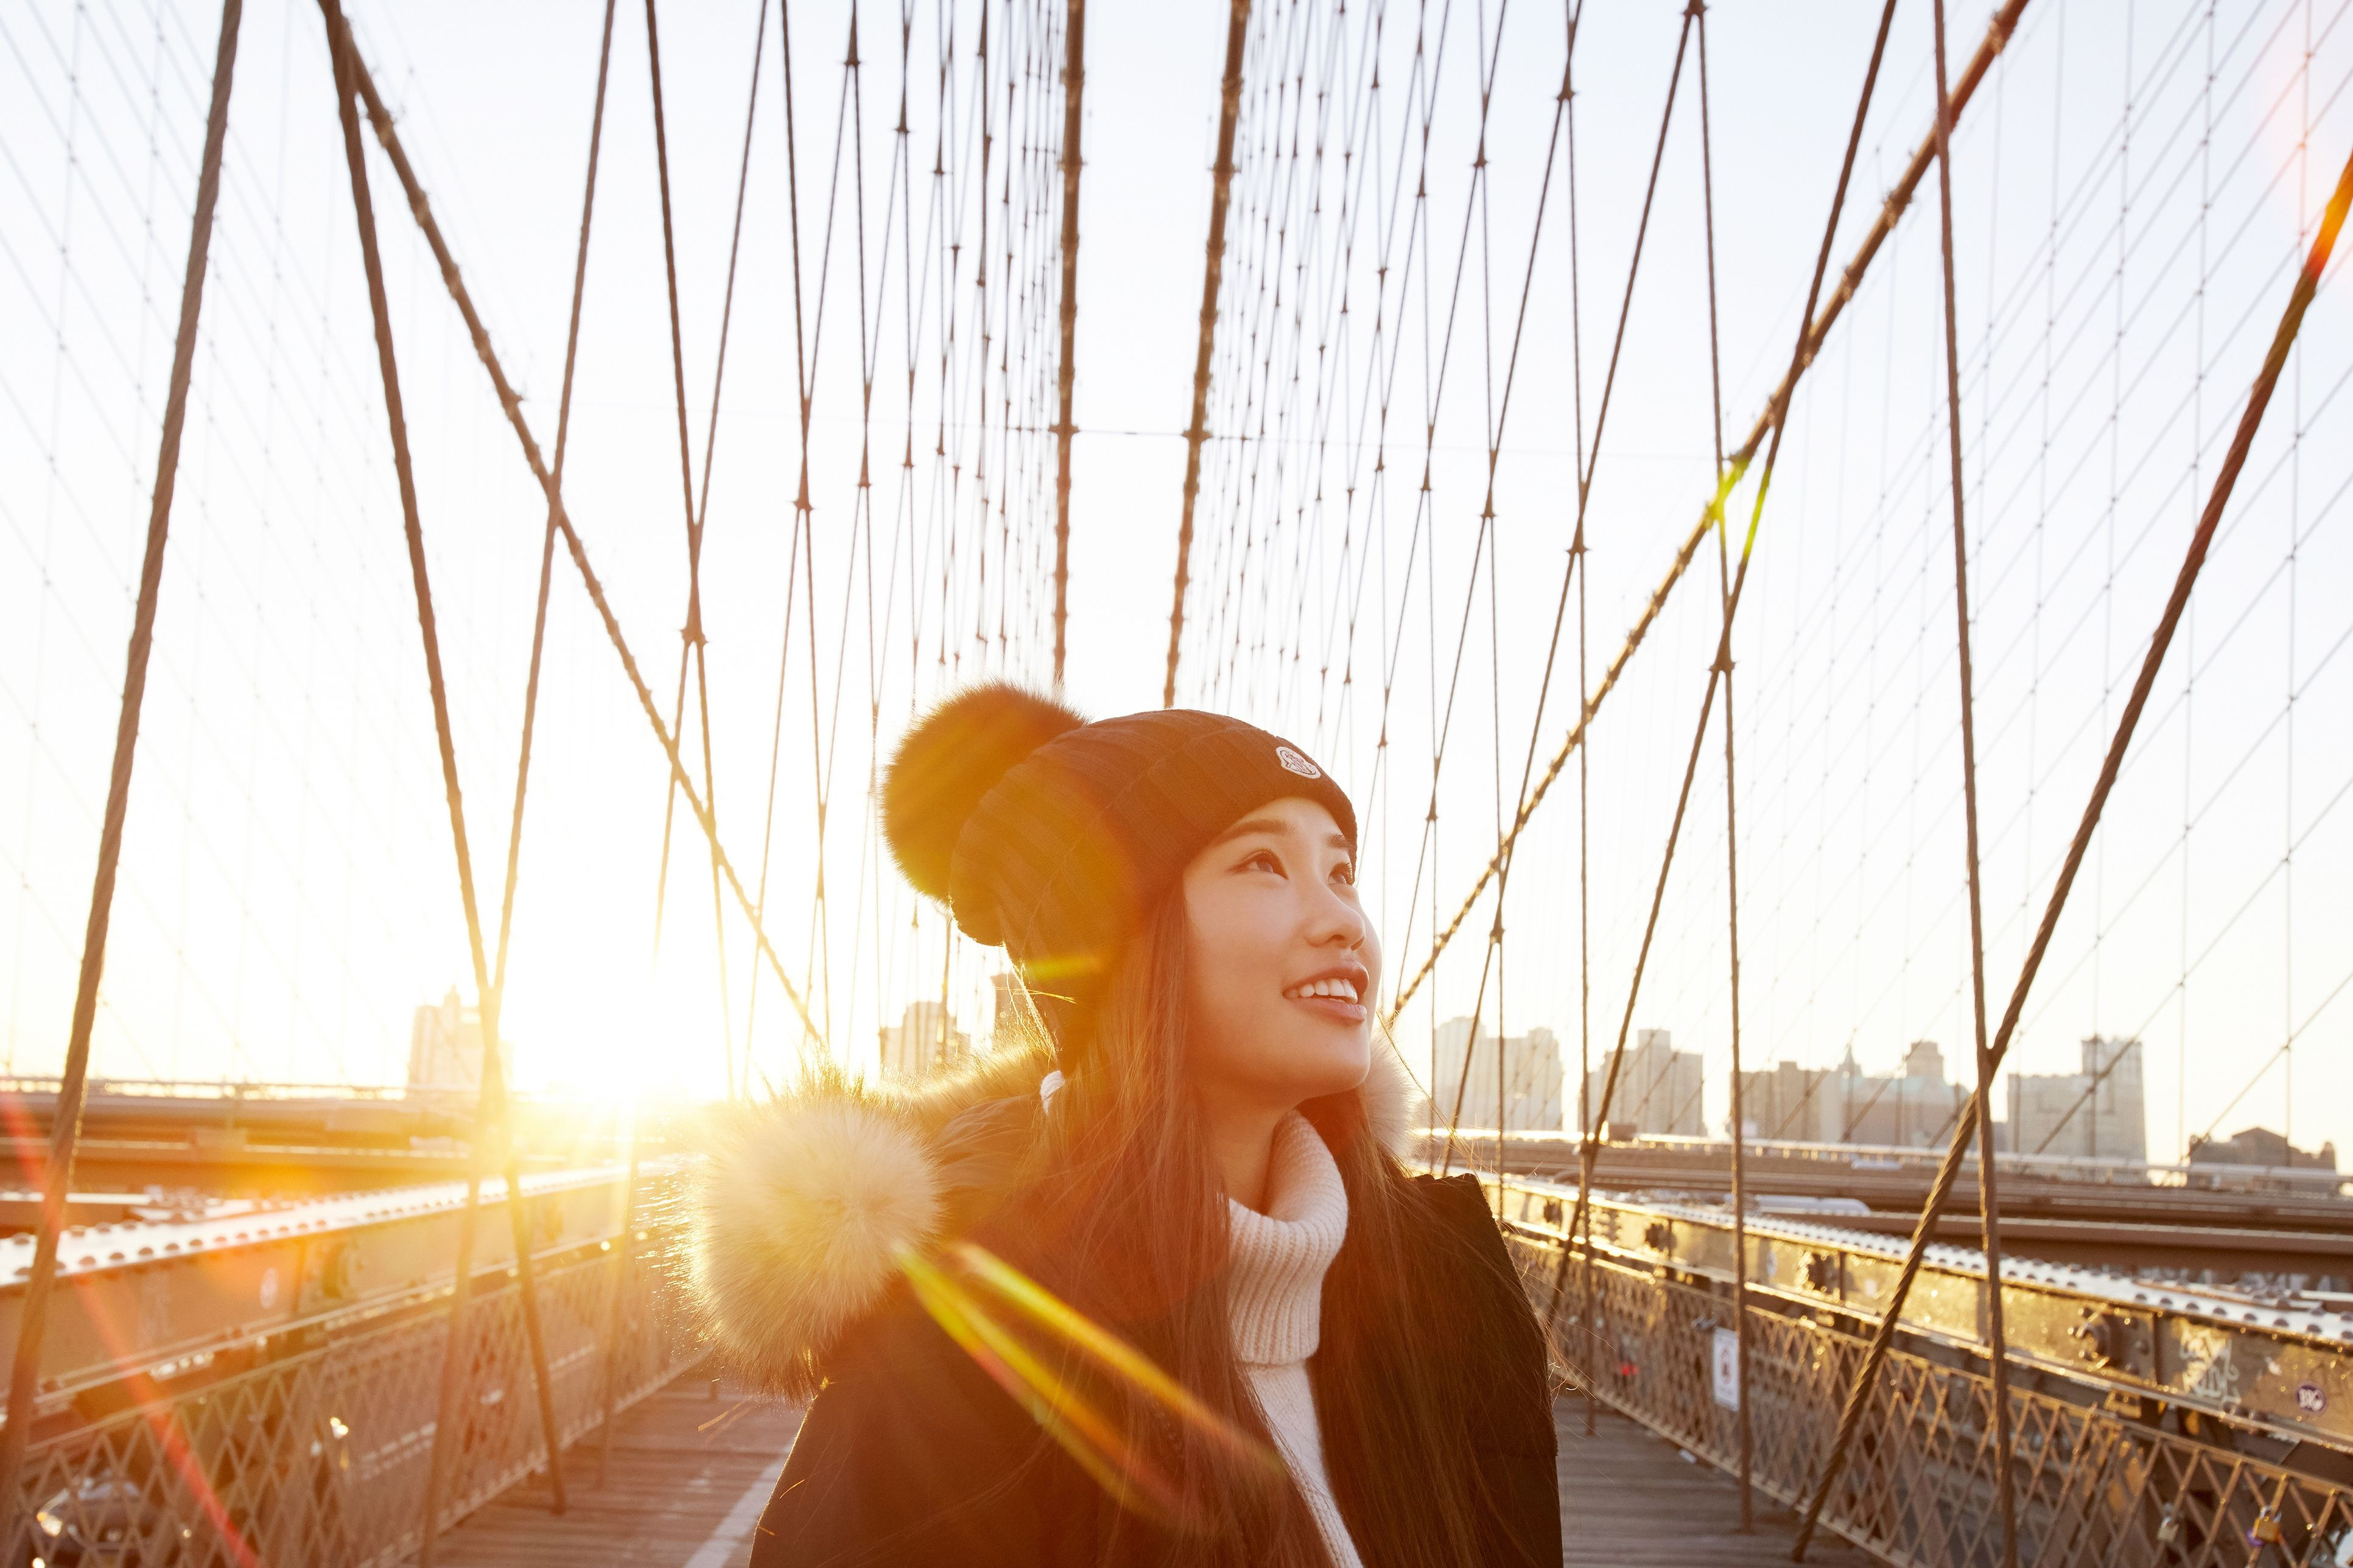 woman in winter clothing smiling and looking up with sun in background on brooklyn bridge 5b082fd